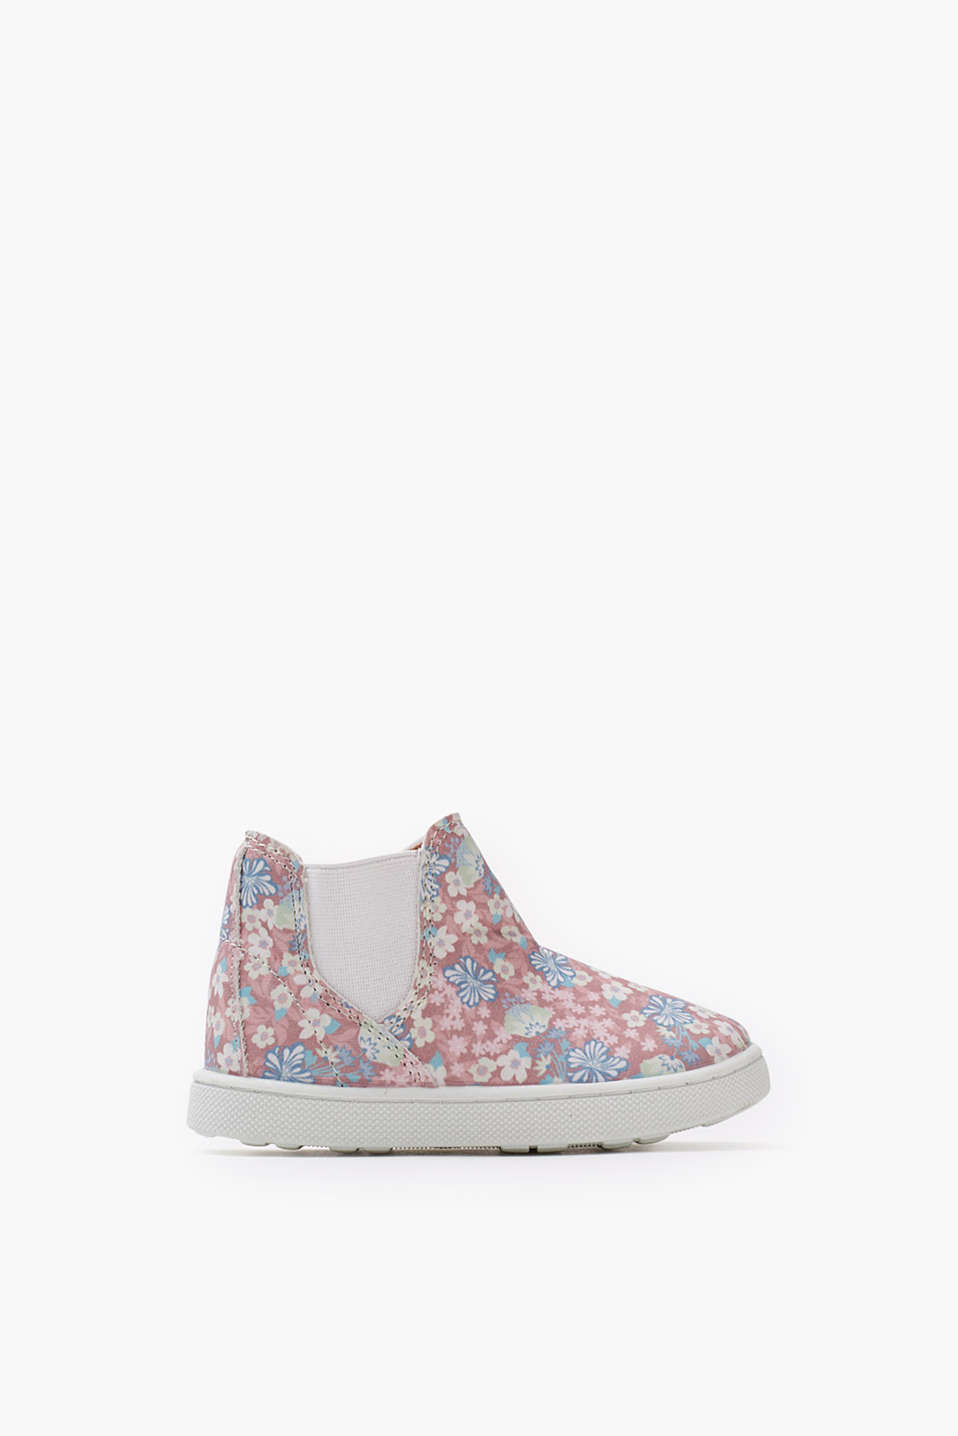 High-tops with comfortable stretchy inserts and a pretty floral pattern